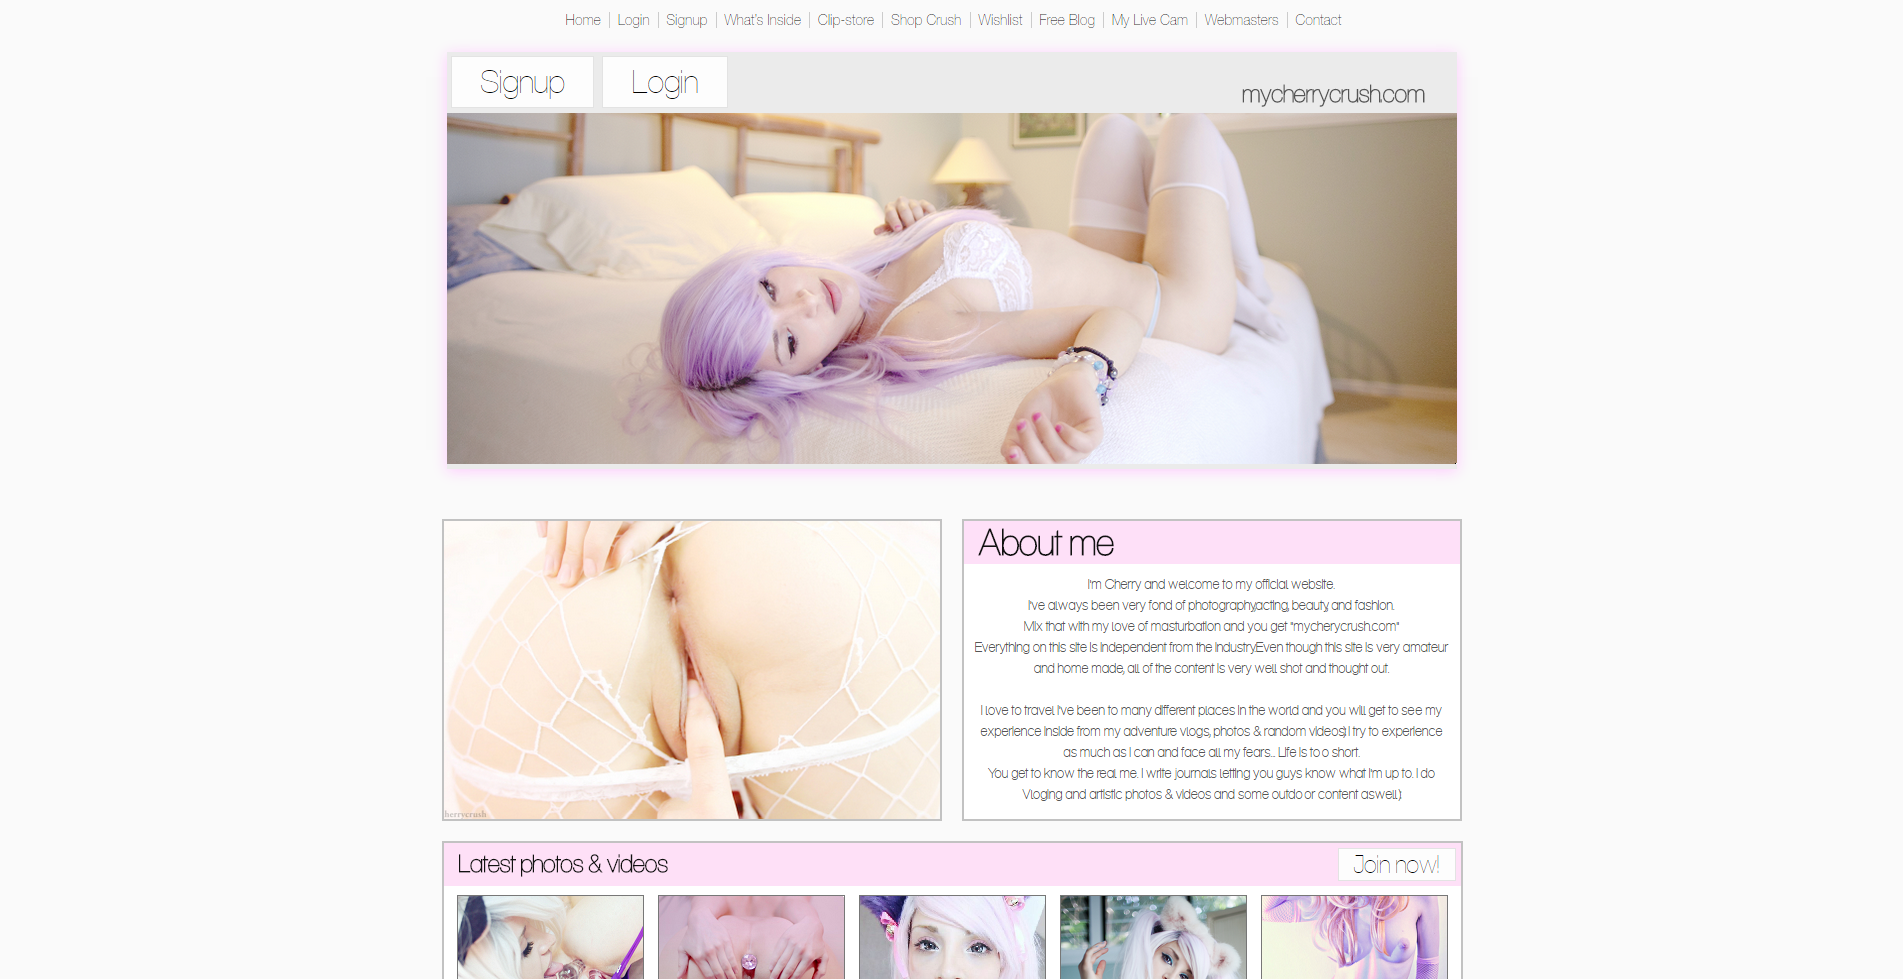 mycherrycrush website